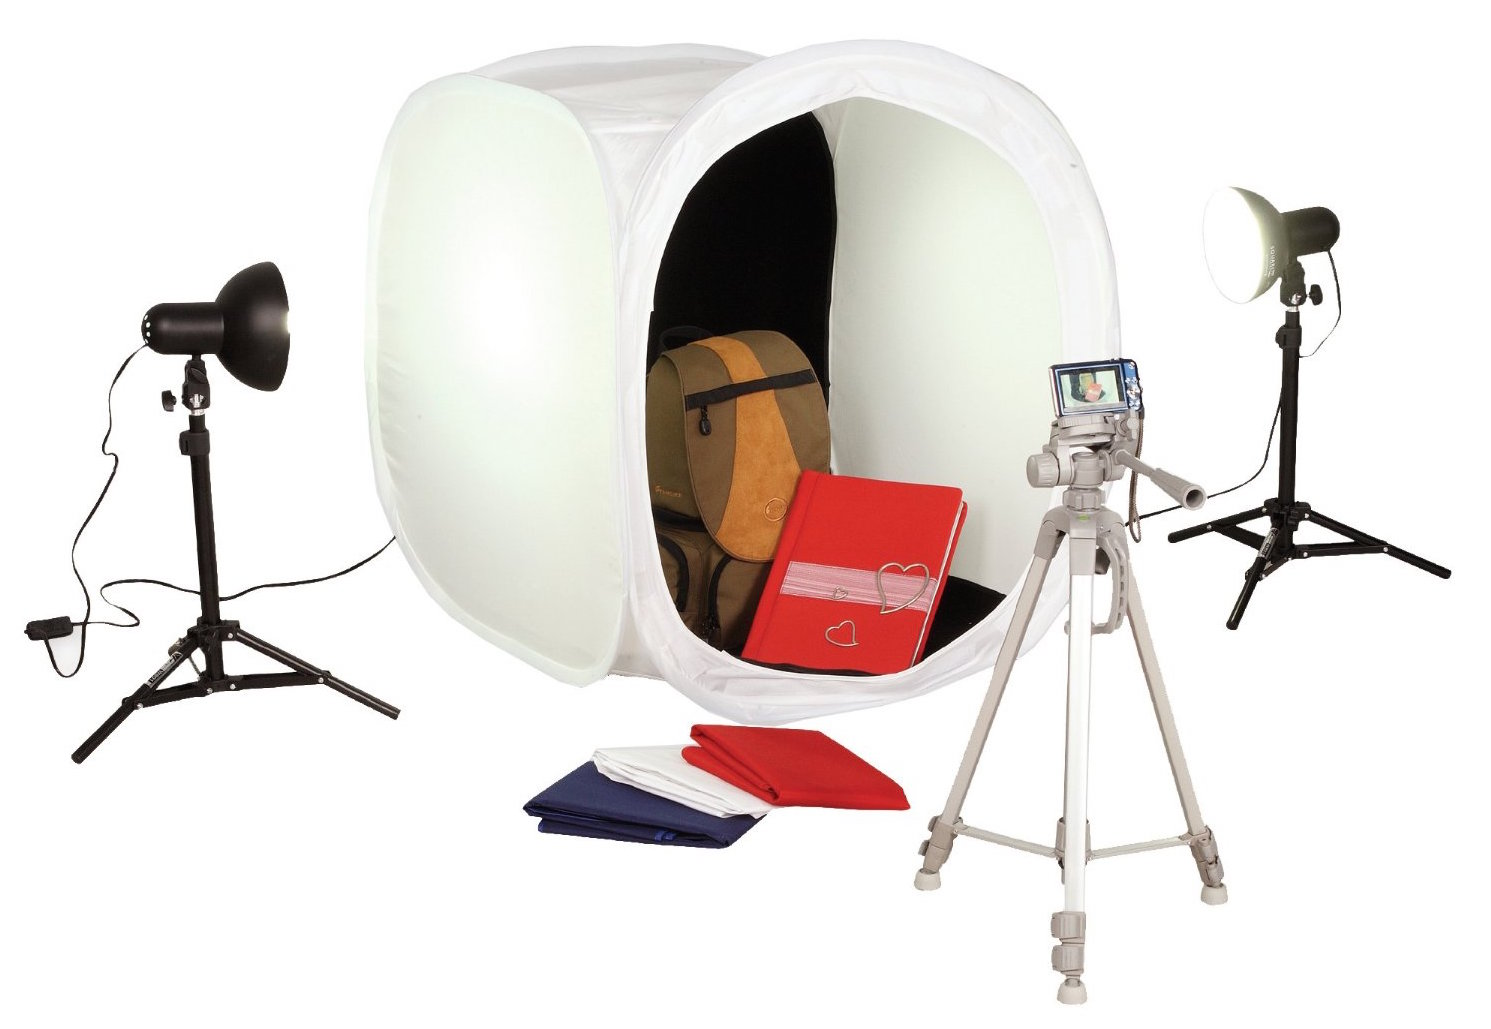 Square Perfect light tent